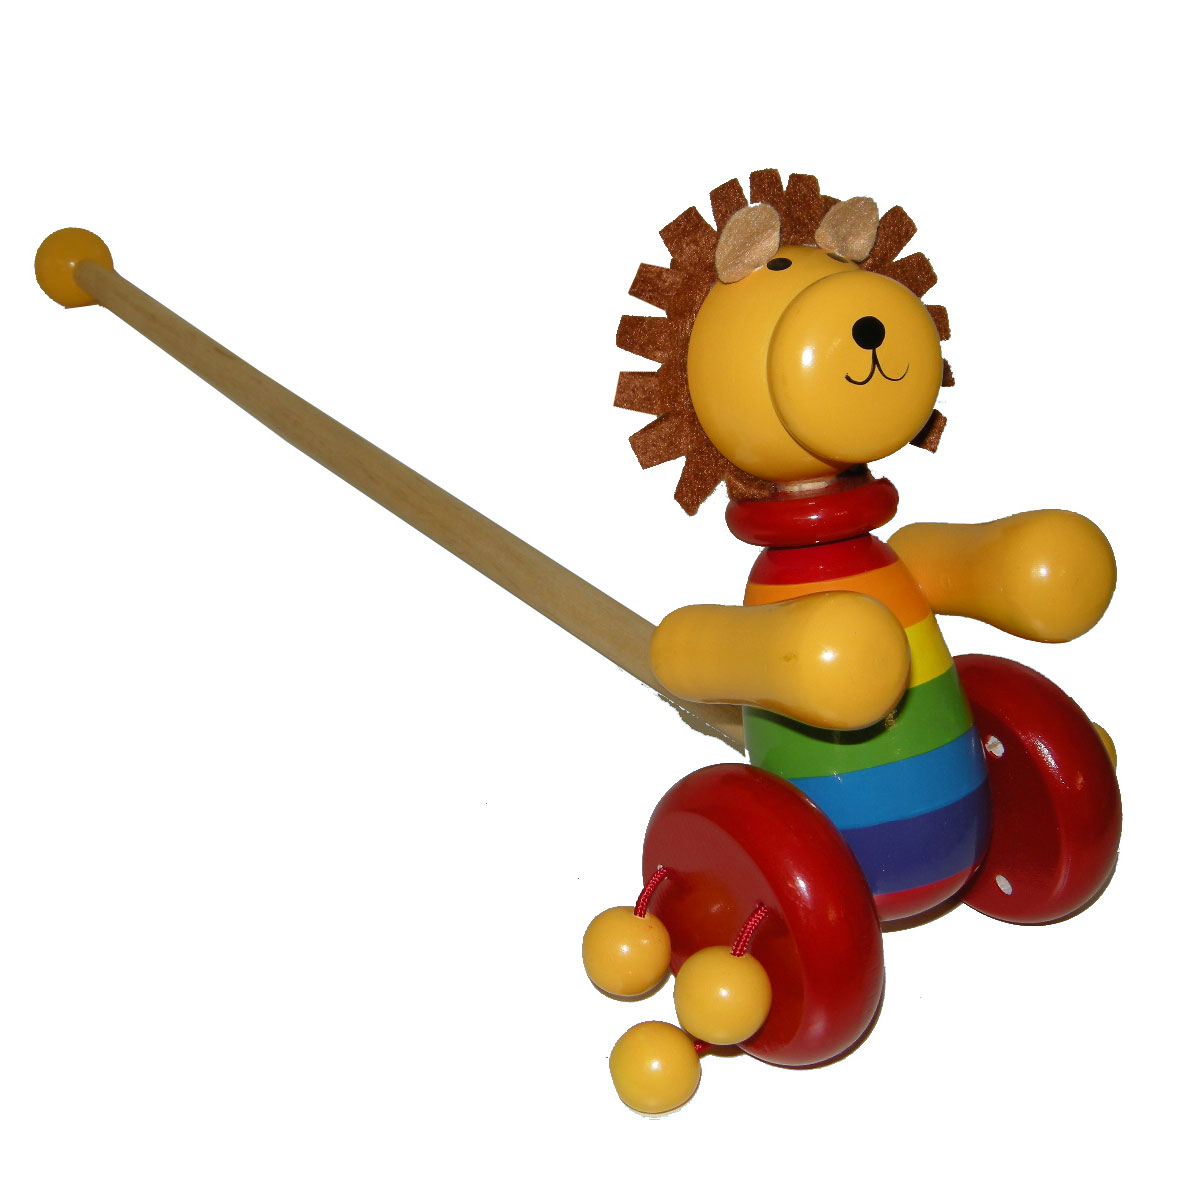 Wooden lion push-a-long